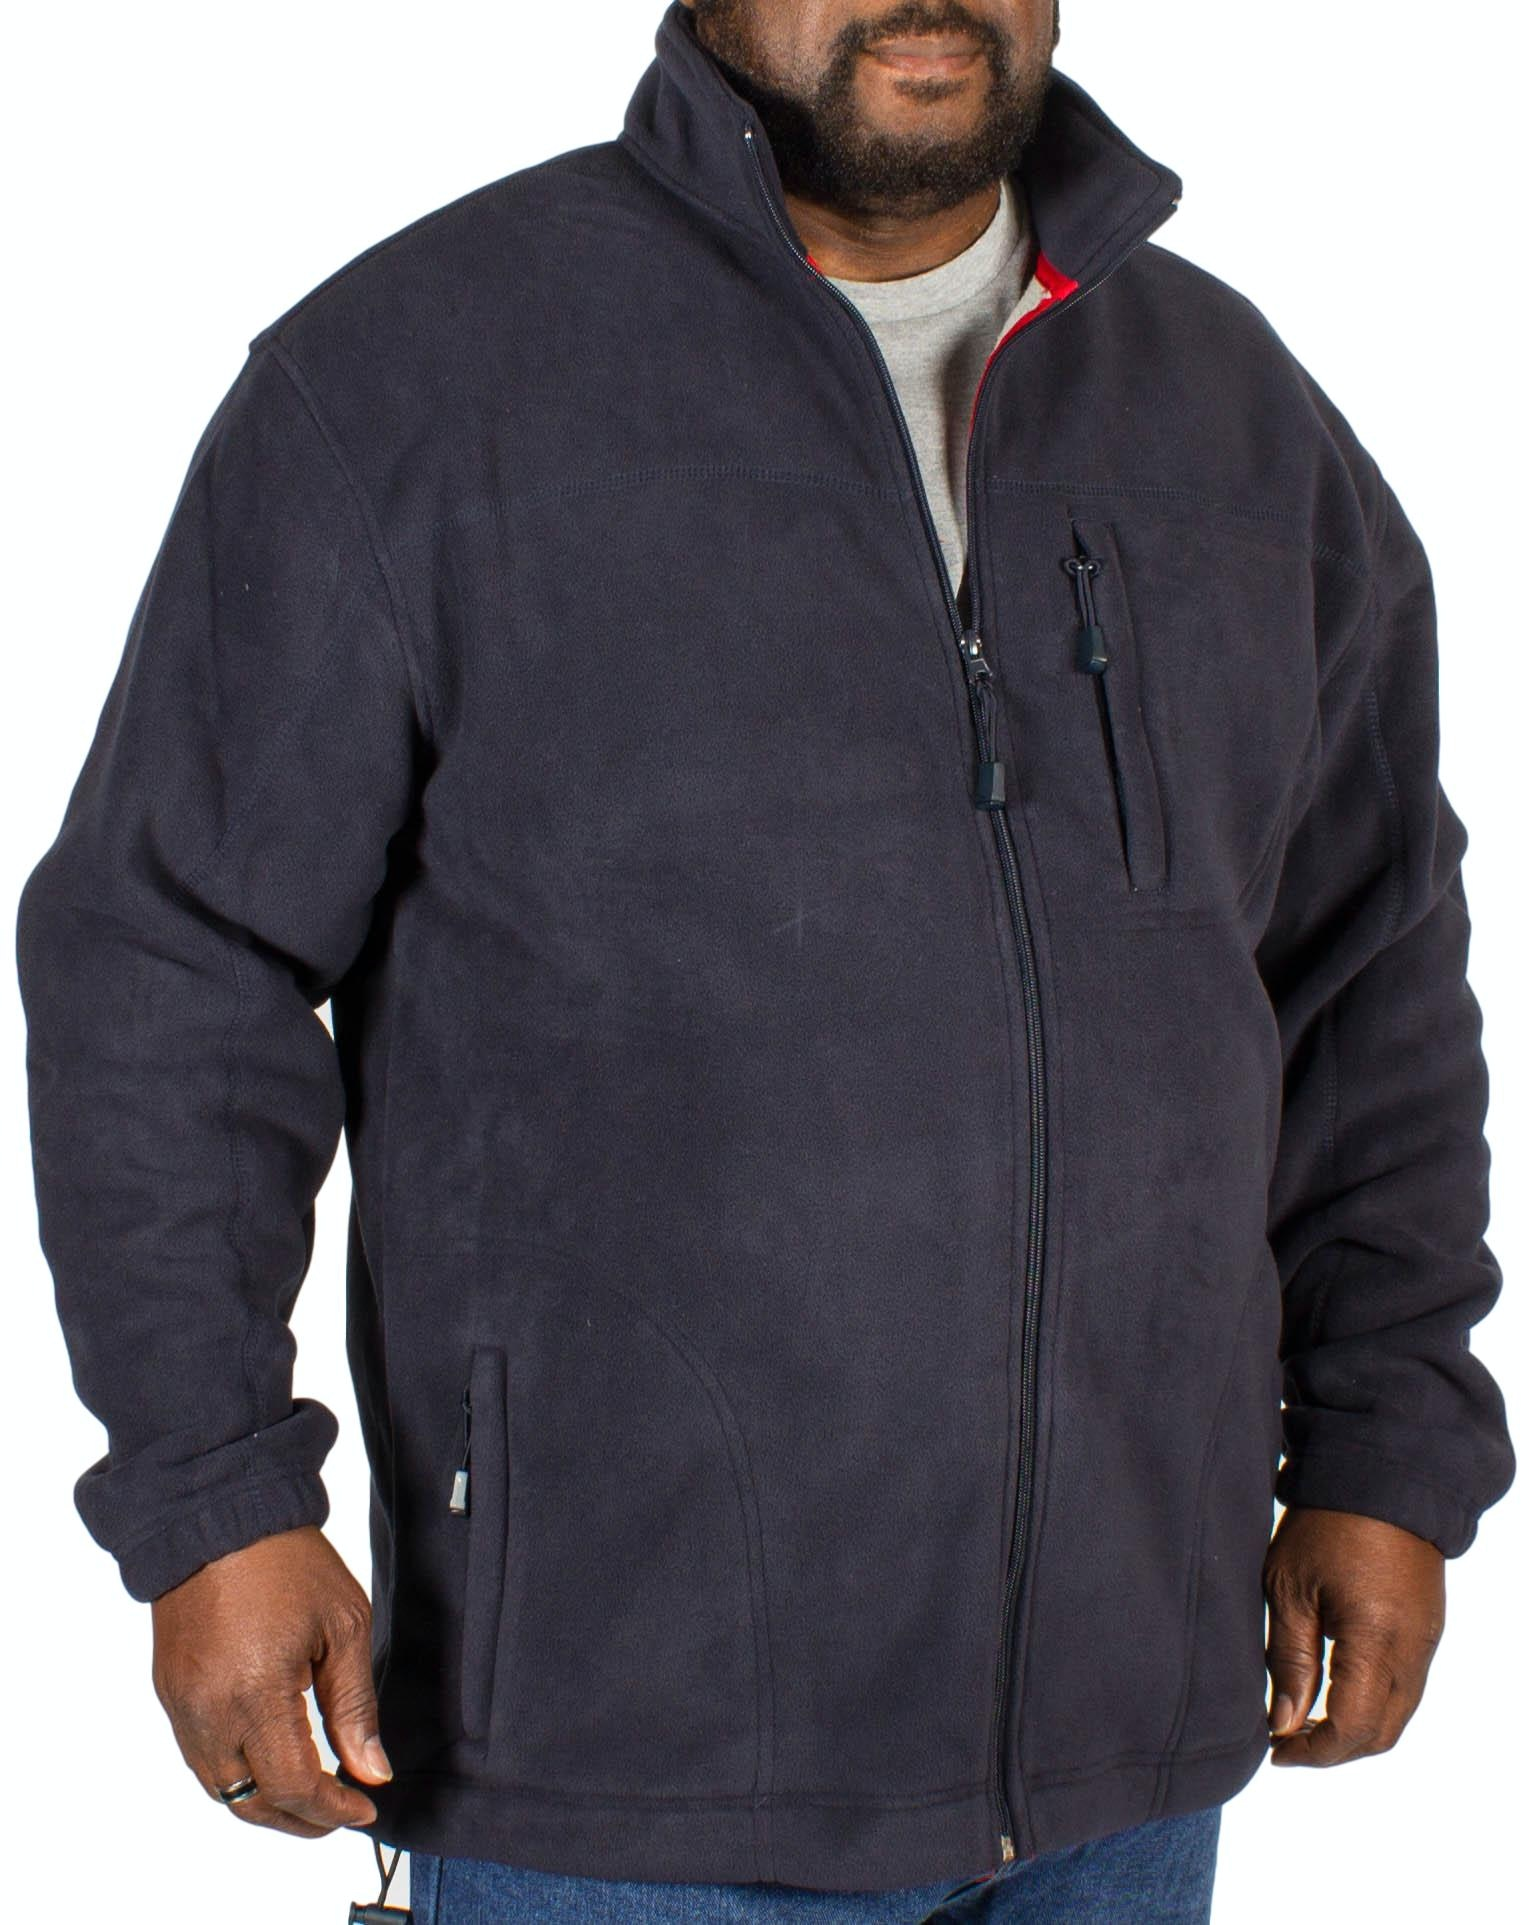 Espionage Navy Fleece Jacket